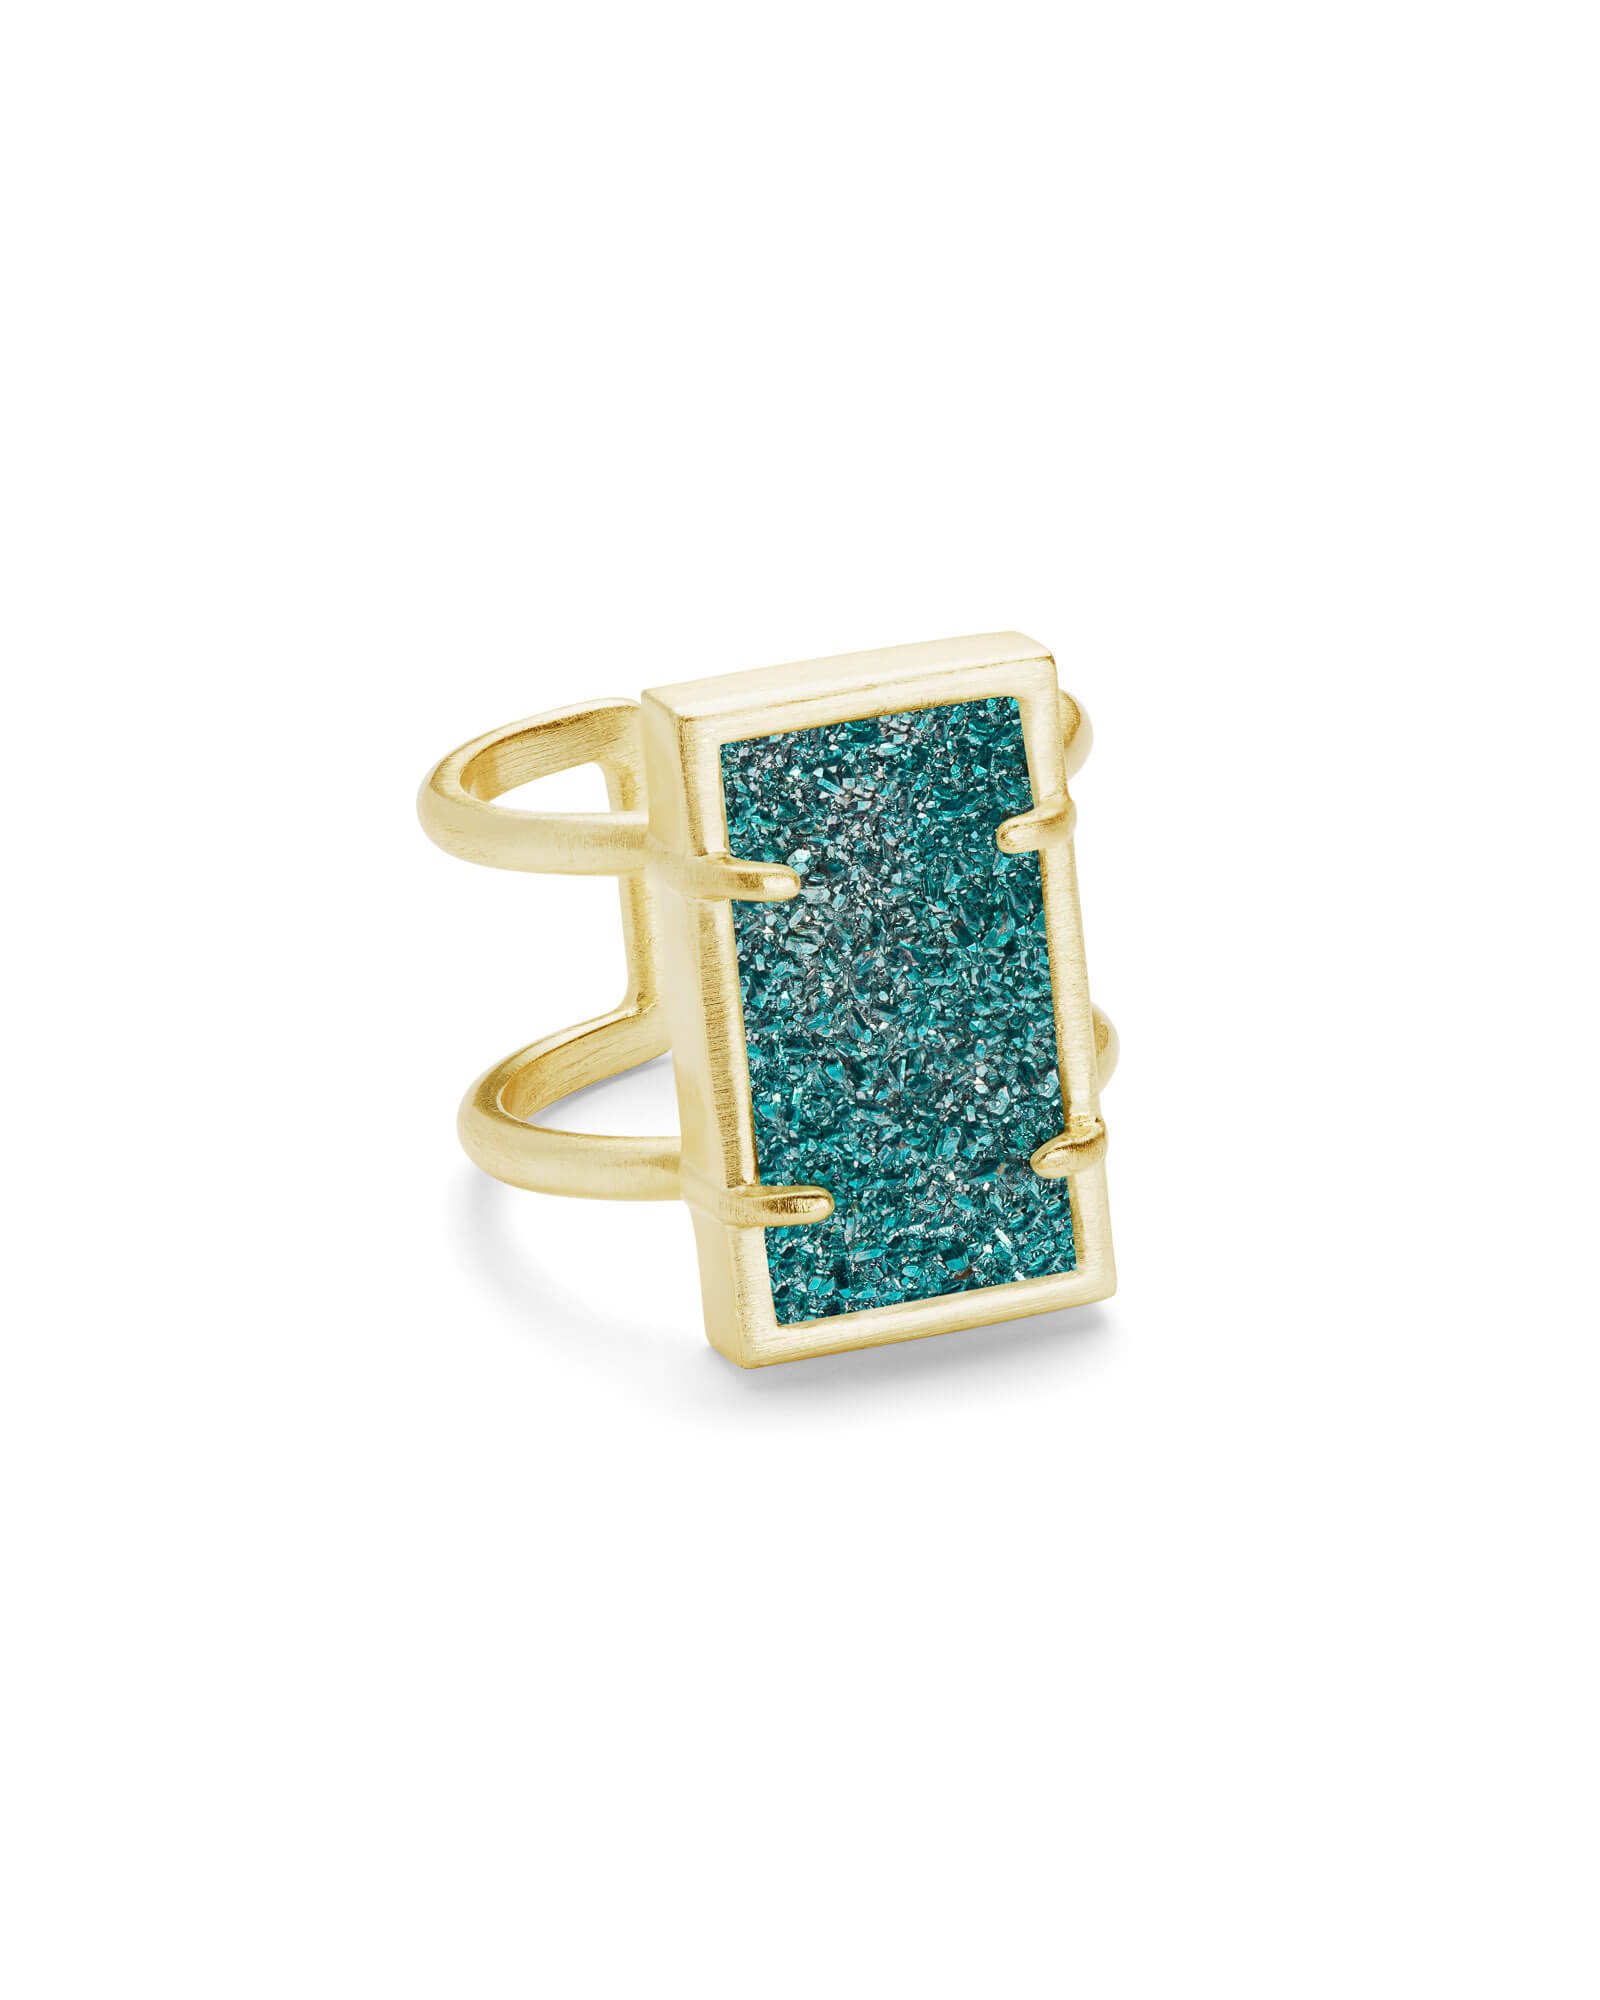 Lennox Gold Ring In Aqua Drusy   S/M by Kendra Scott